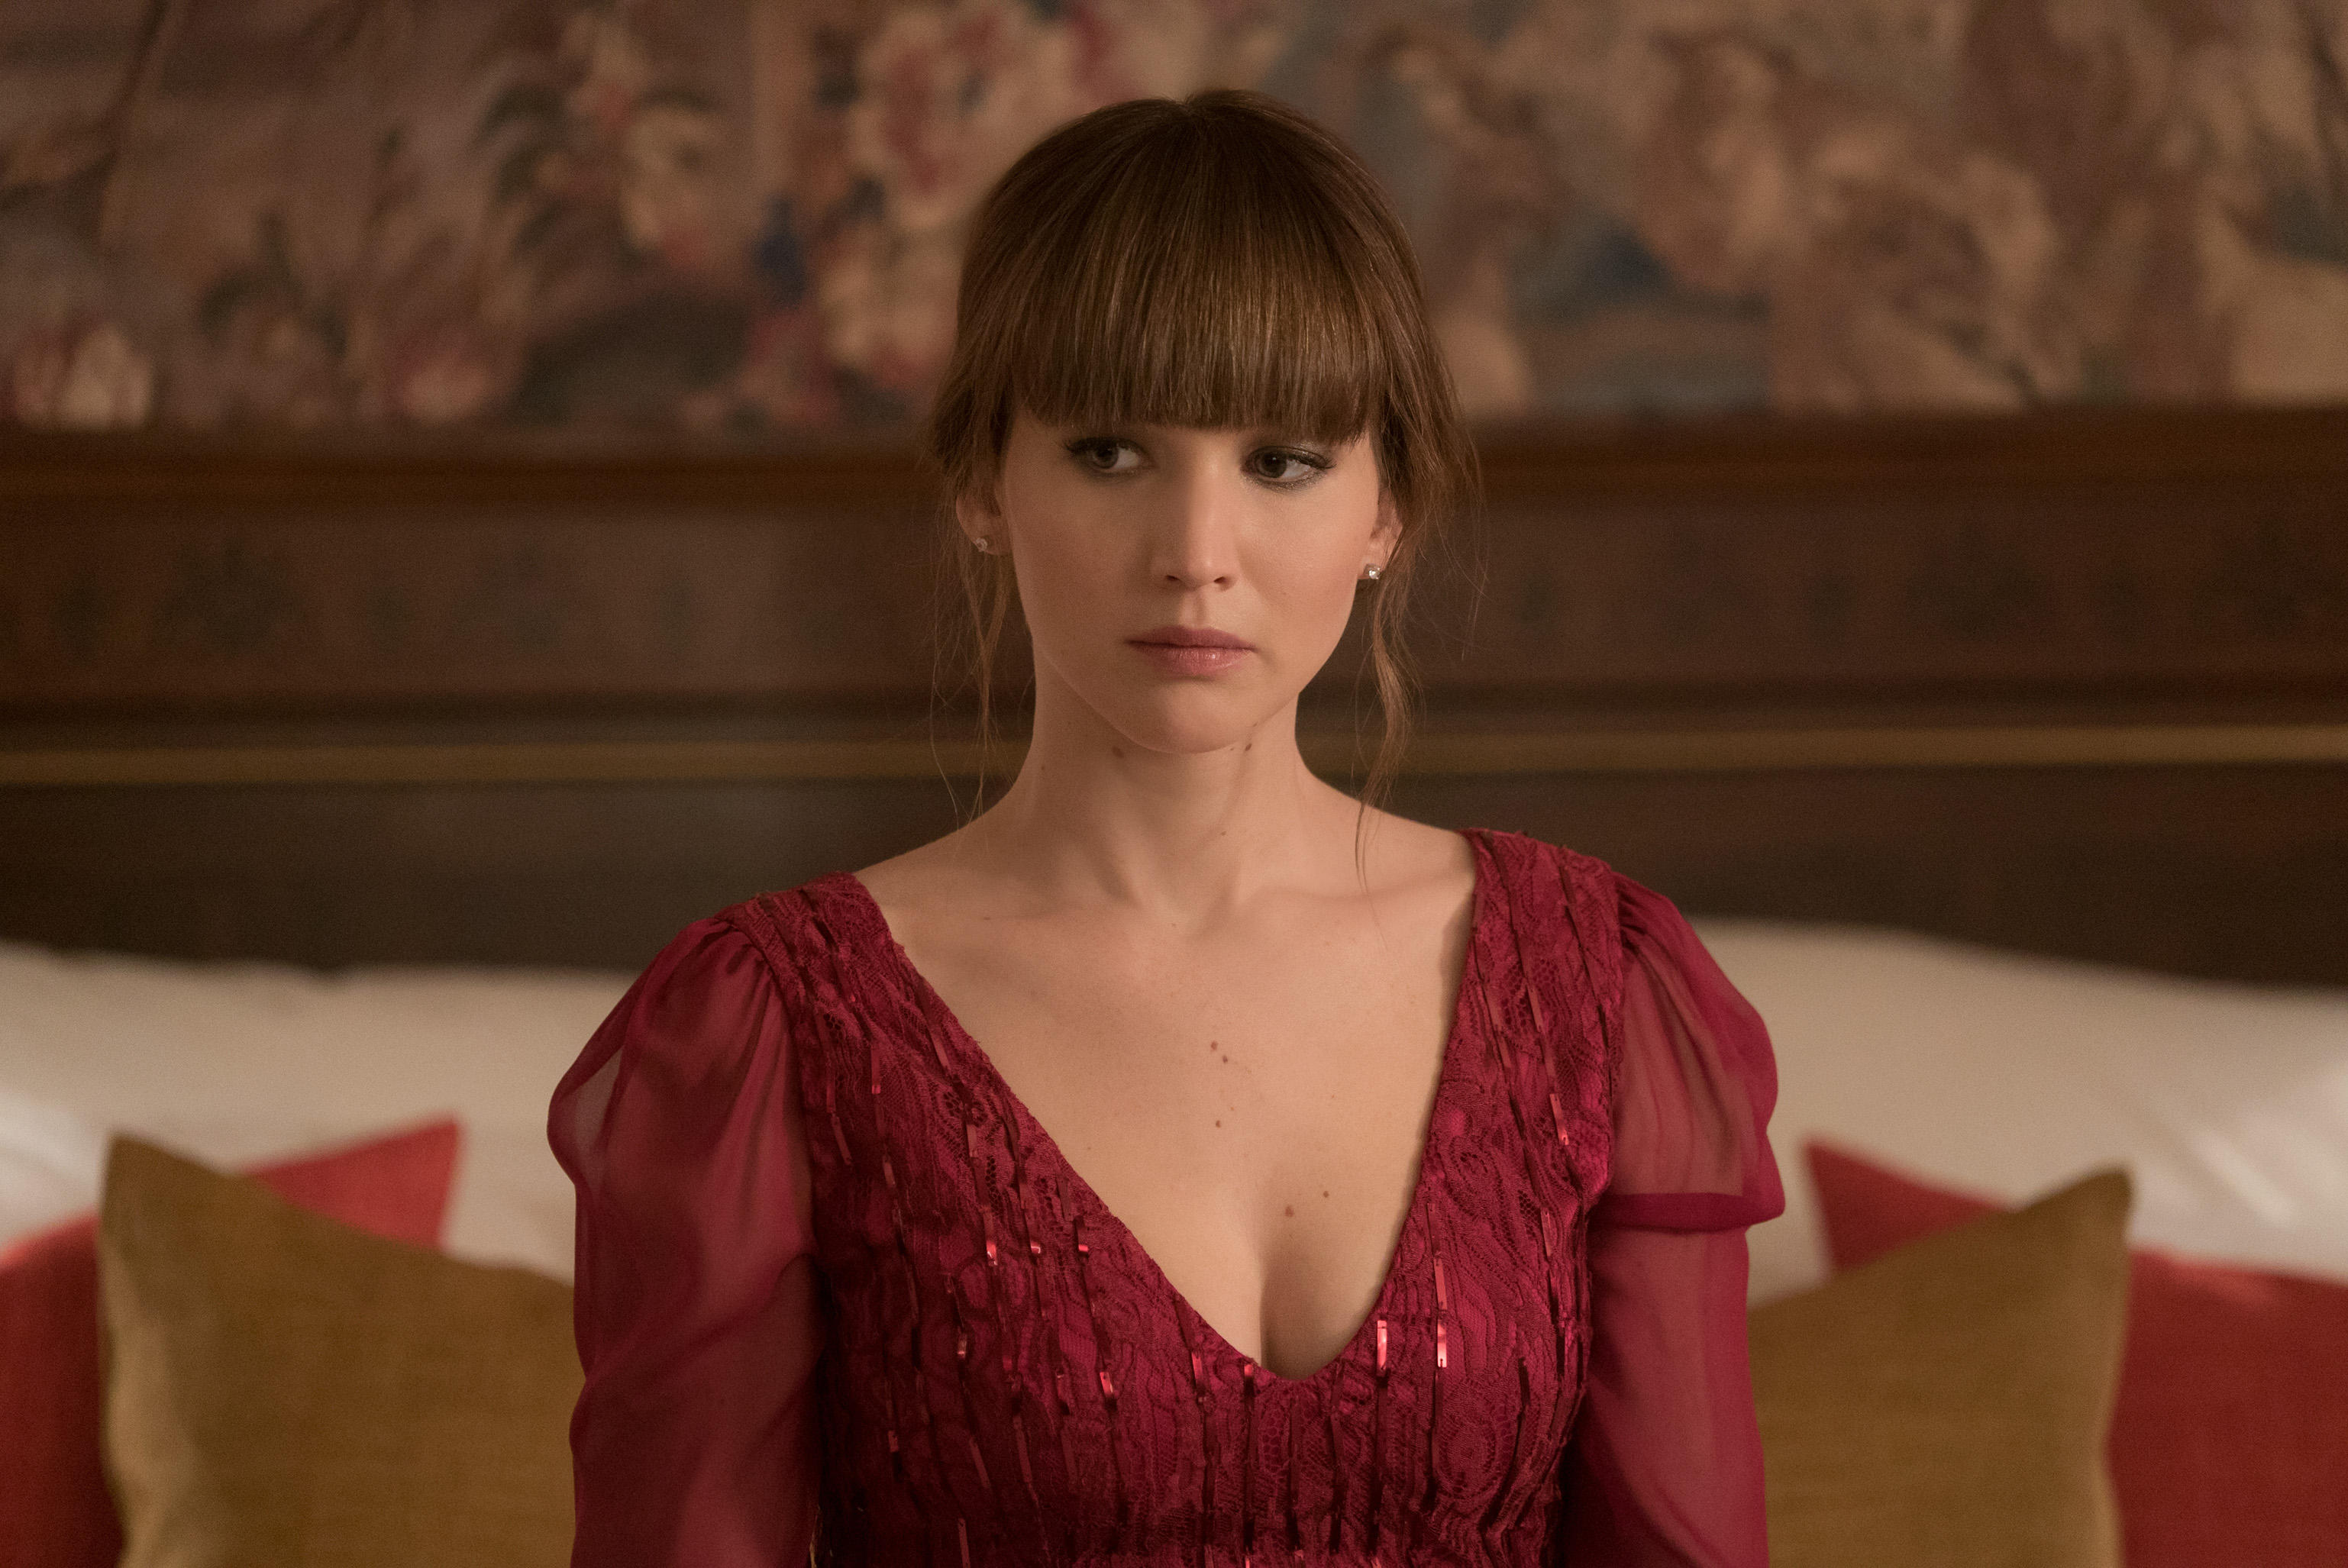 30 (tie). Red Sparrow